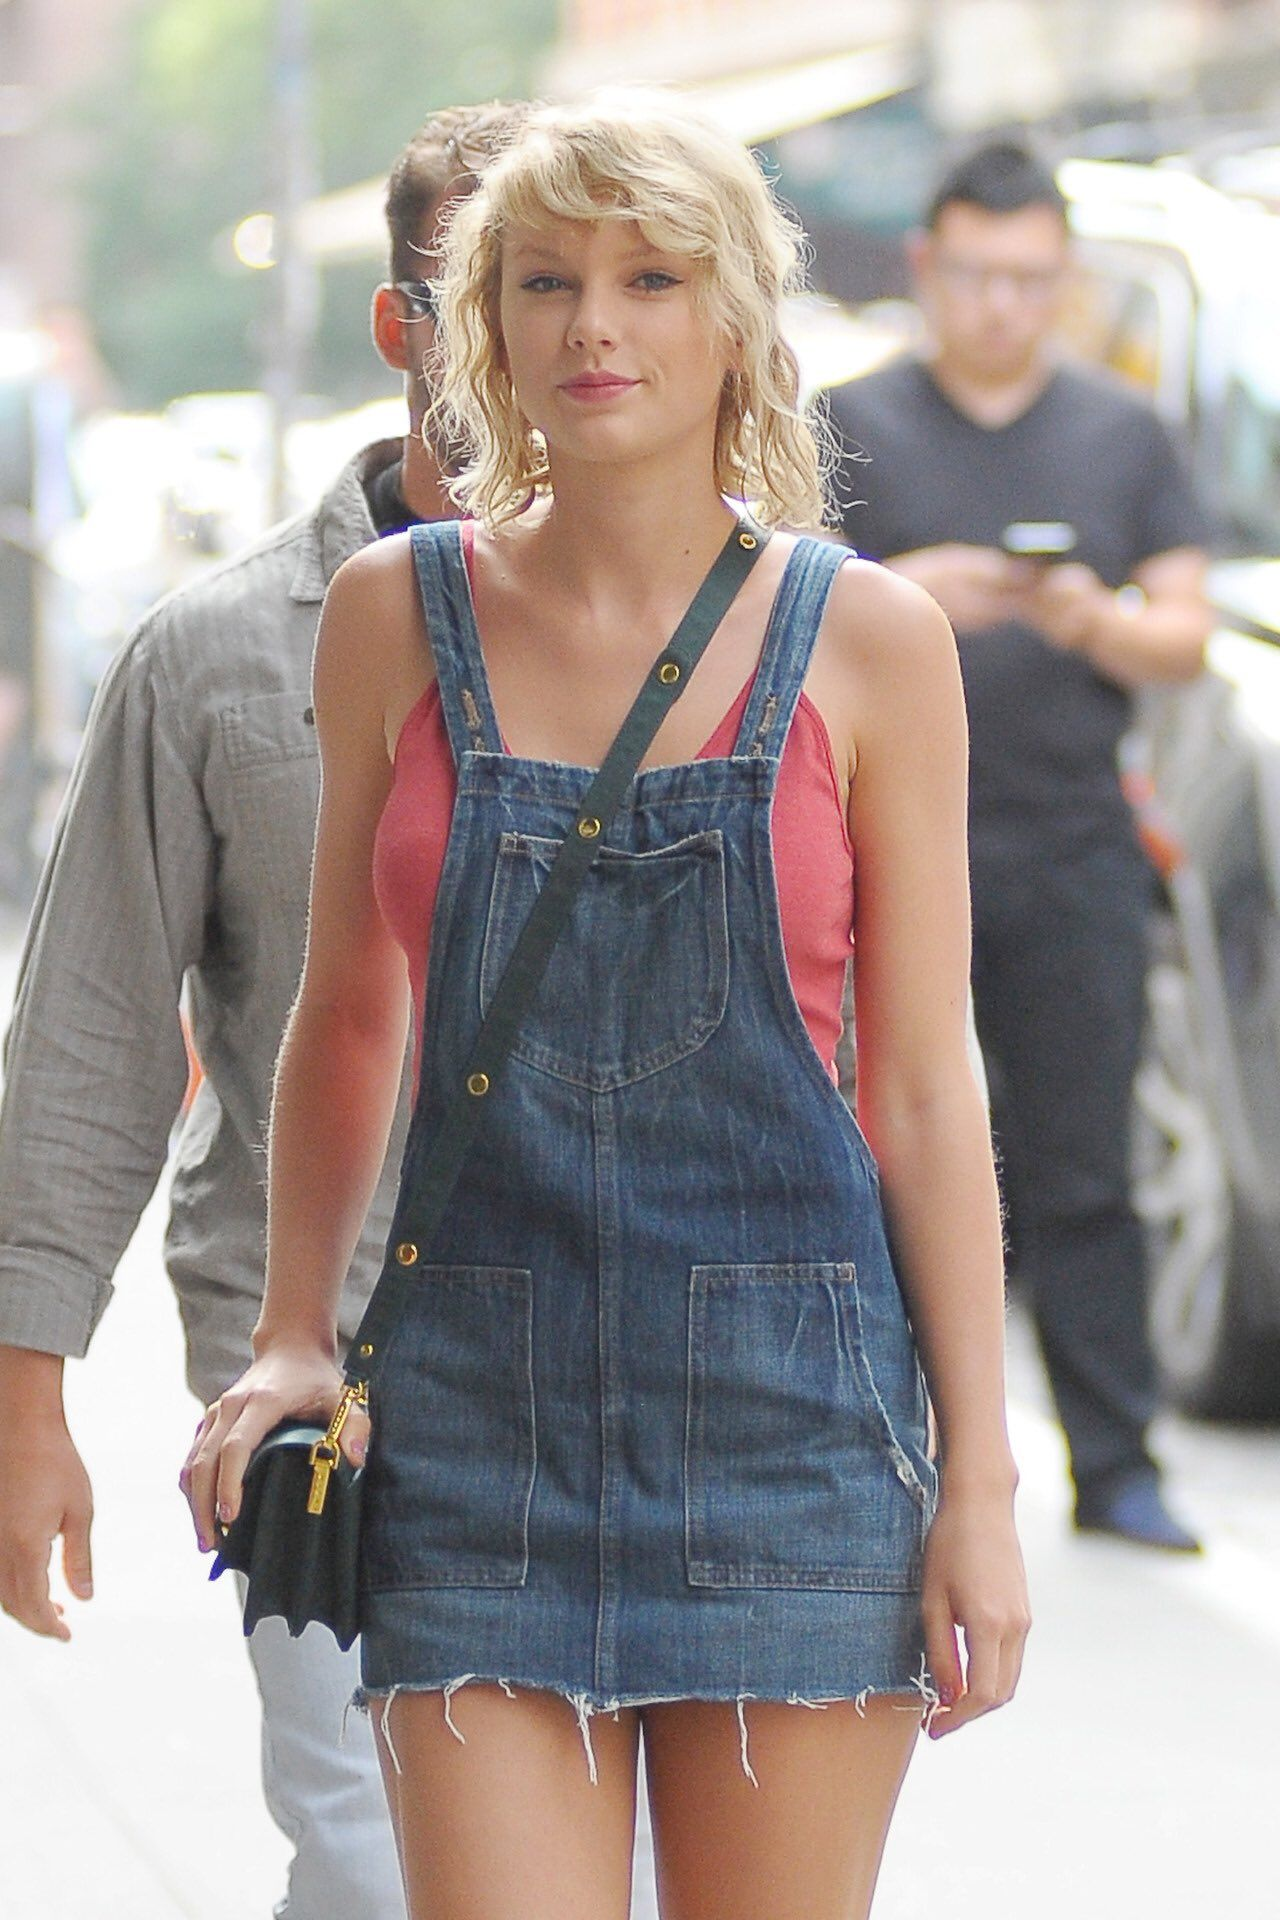 Pin by pudica on Taylor Swift | Taylor swift street style ...